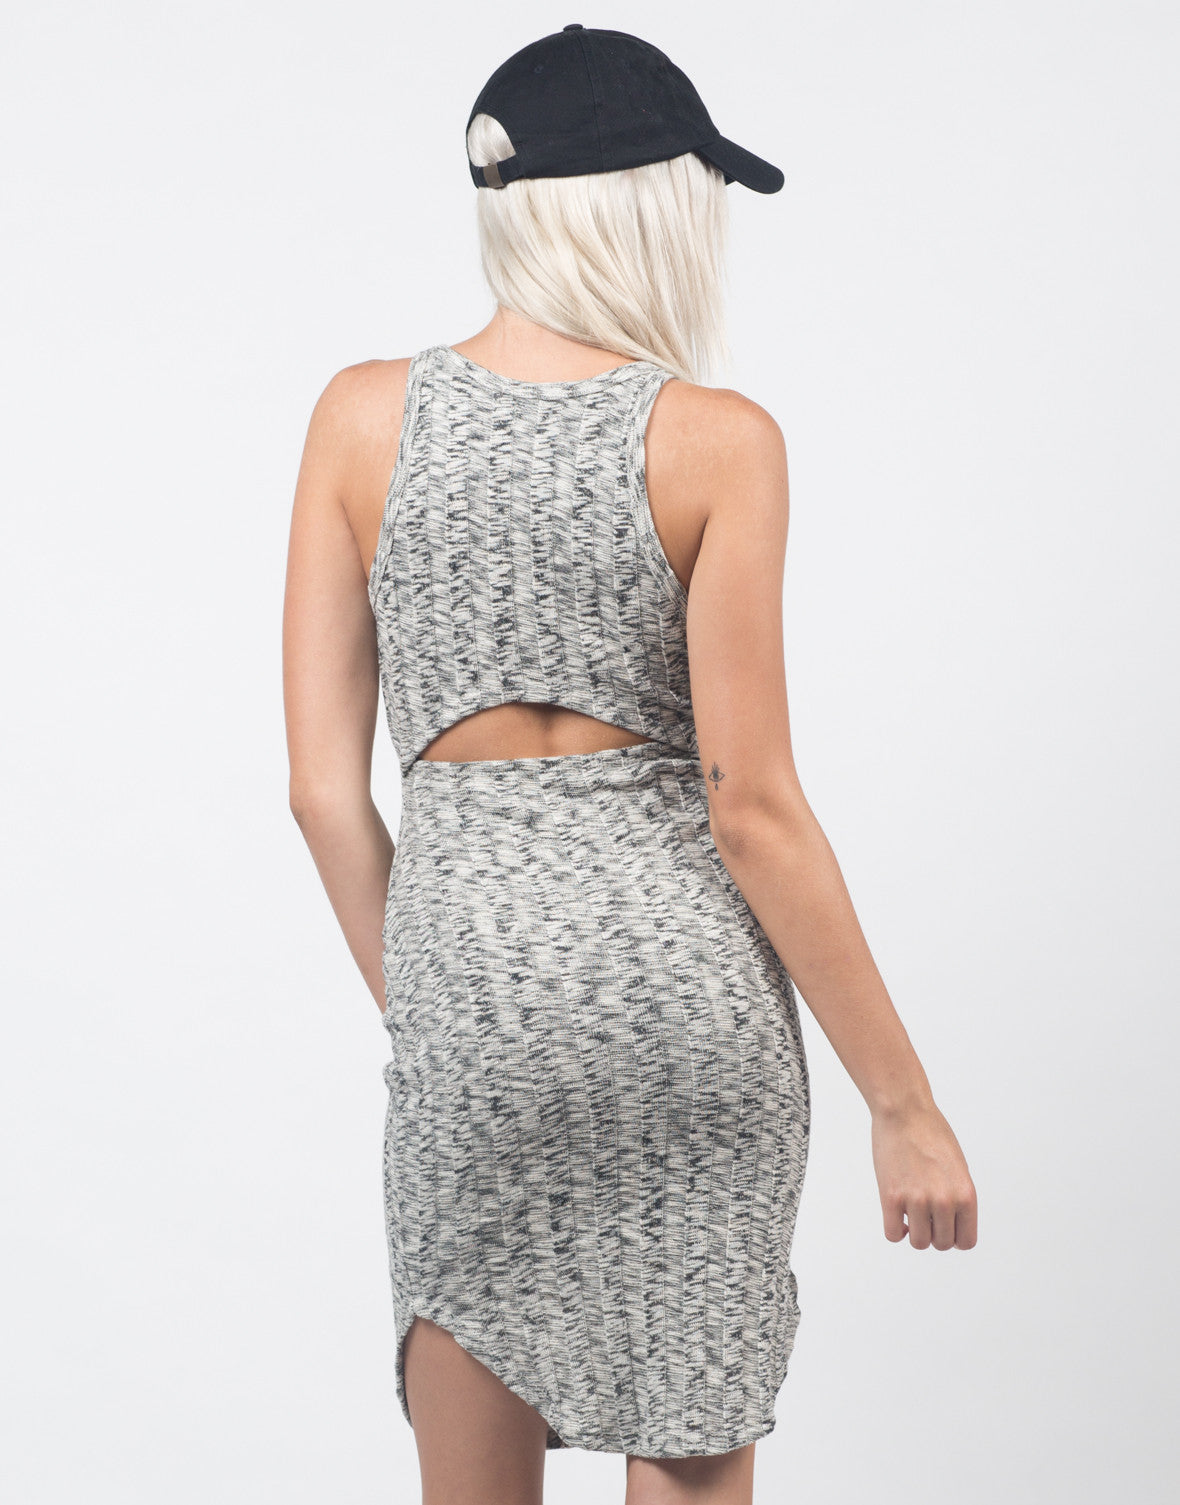 Back View of Marled Knit Dress